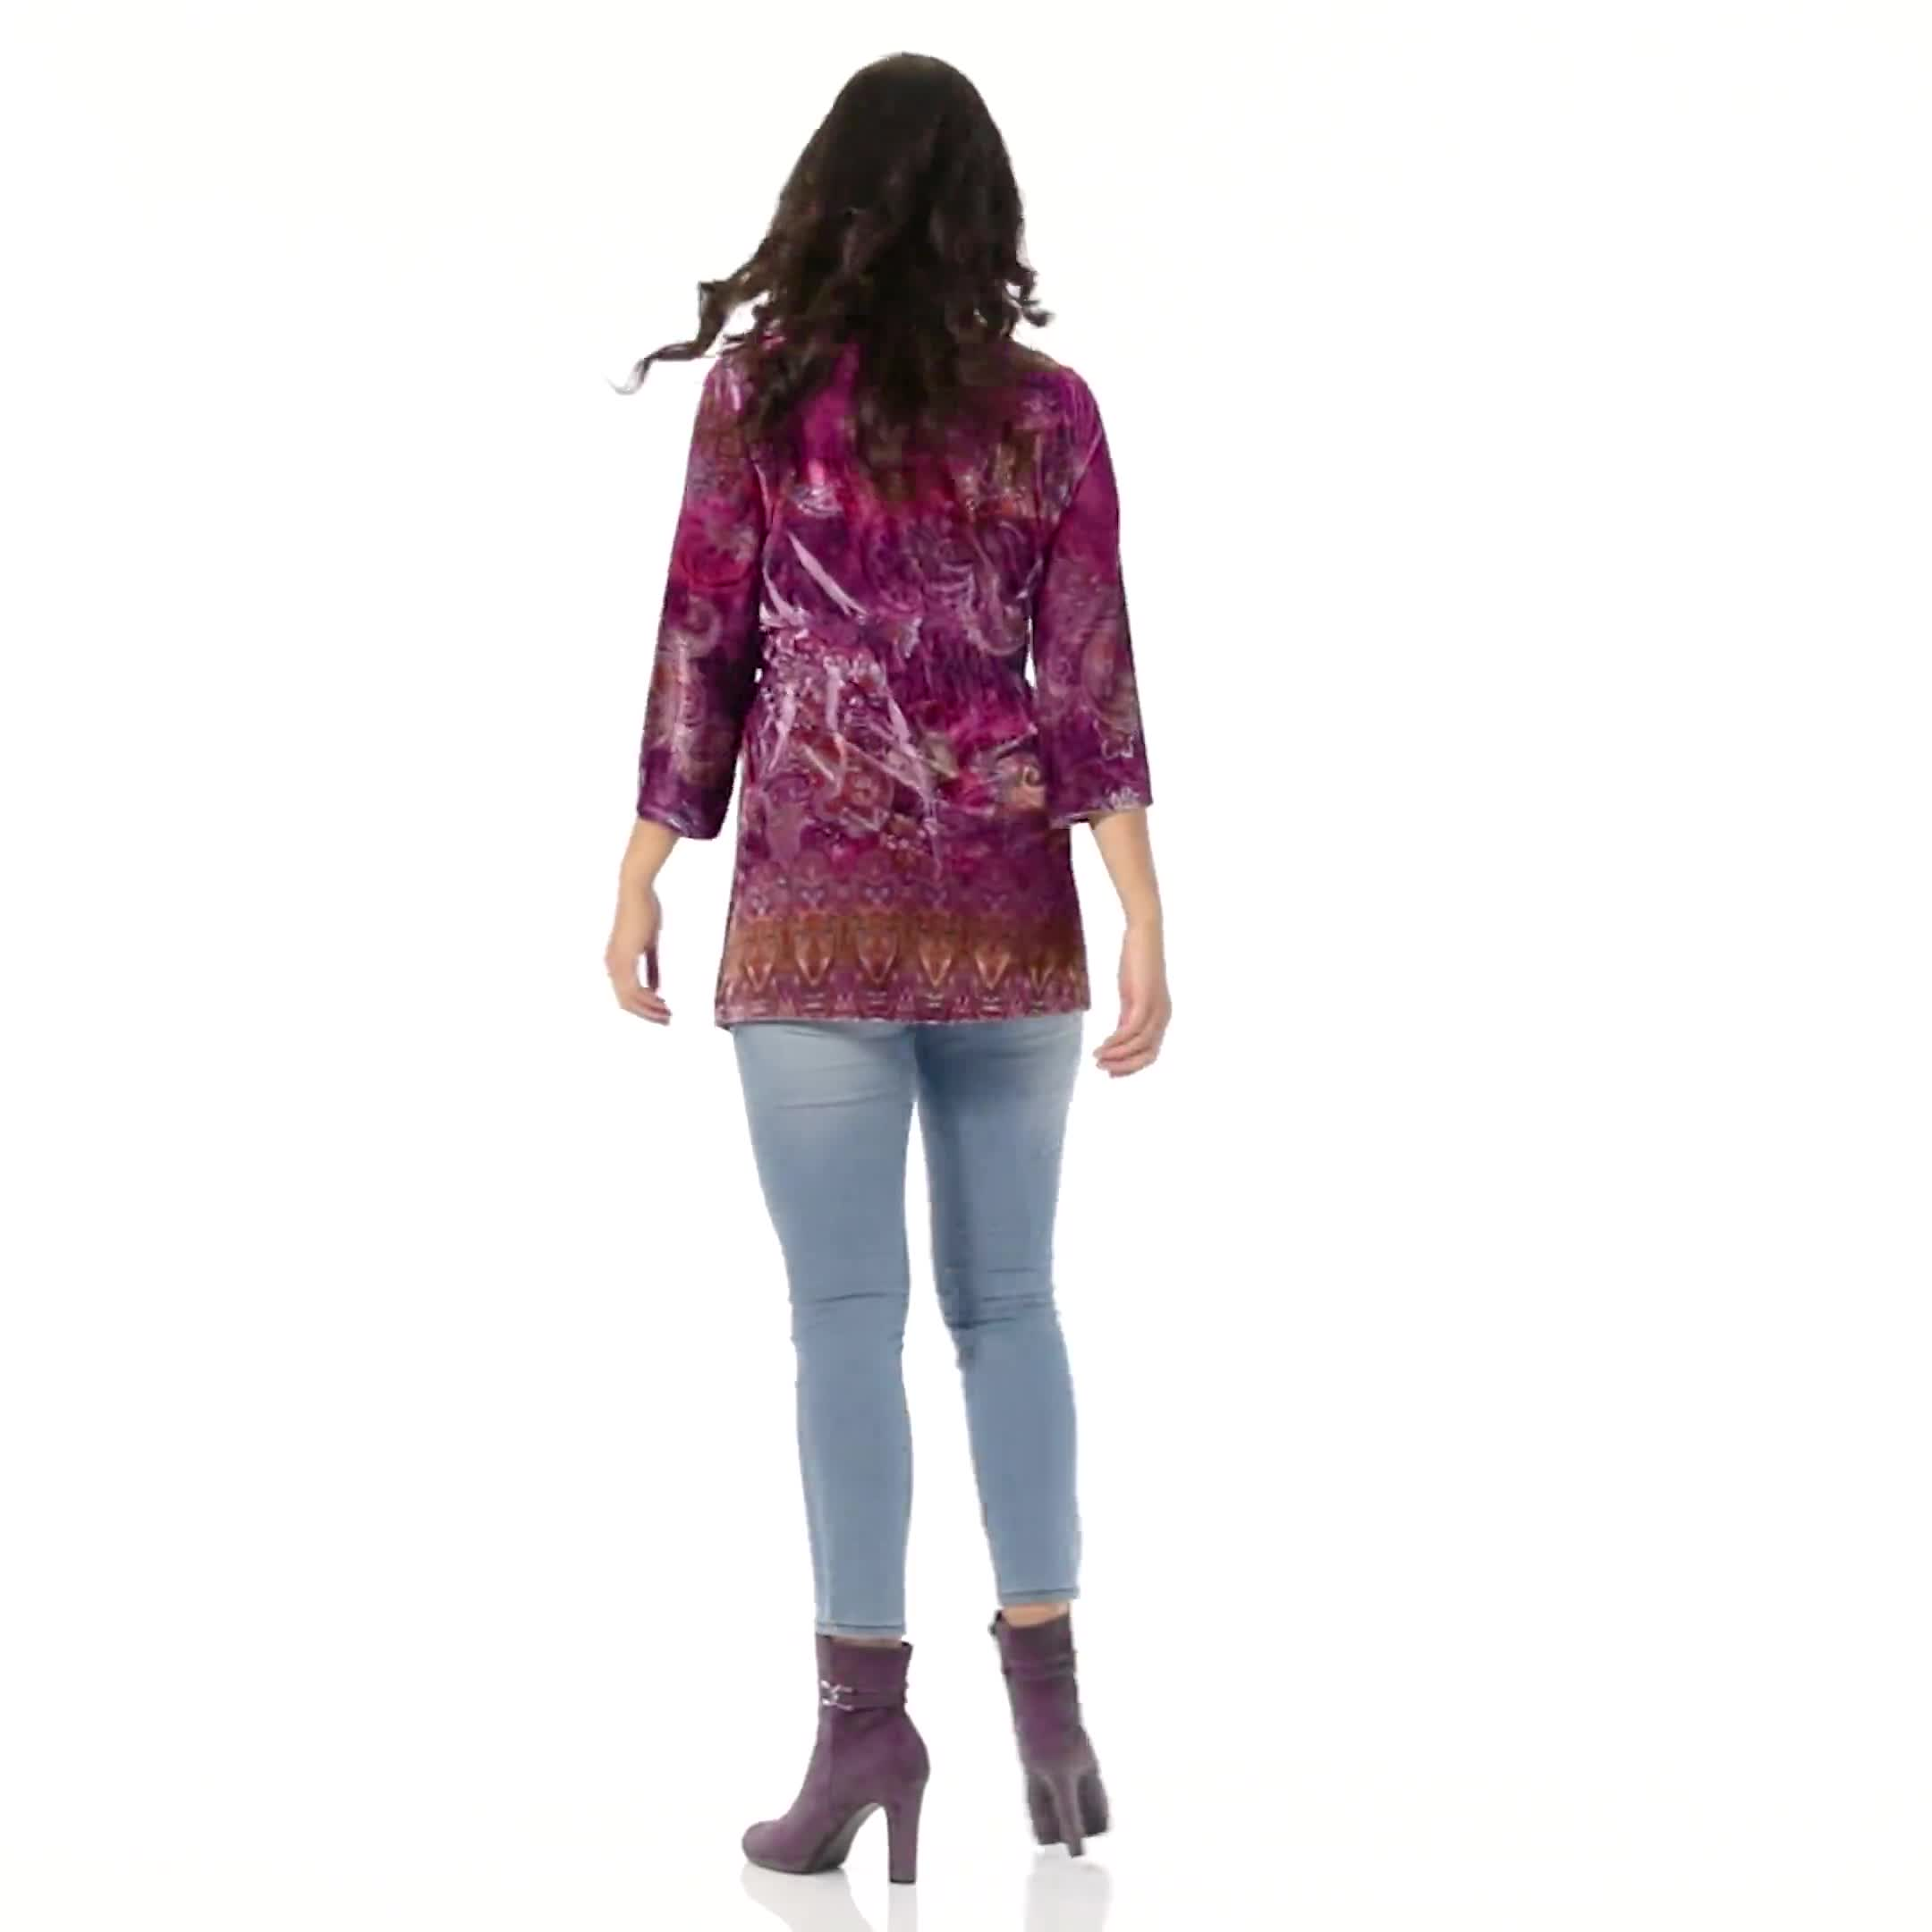 Influential Lady Velvet Knit Tunic Top - Video